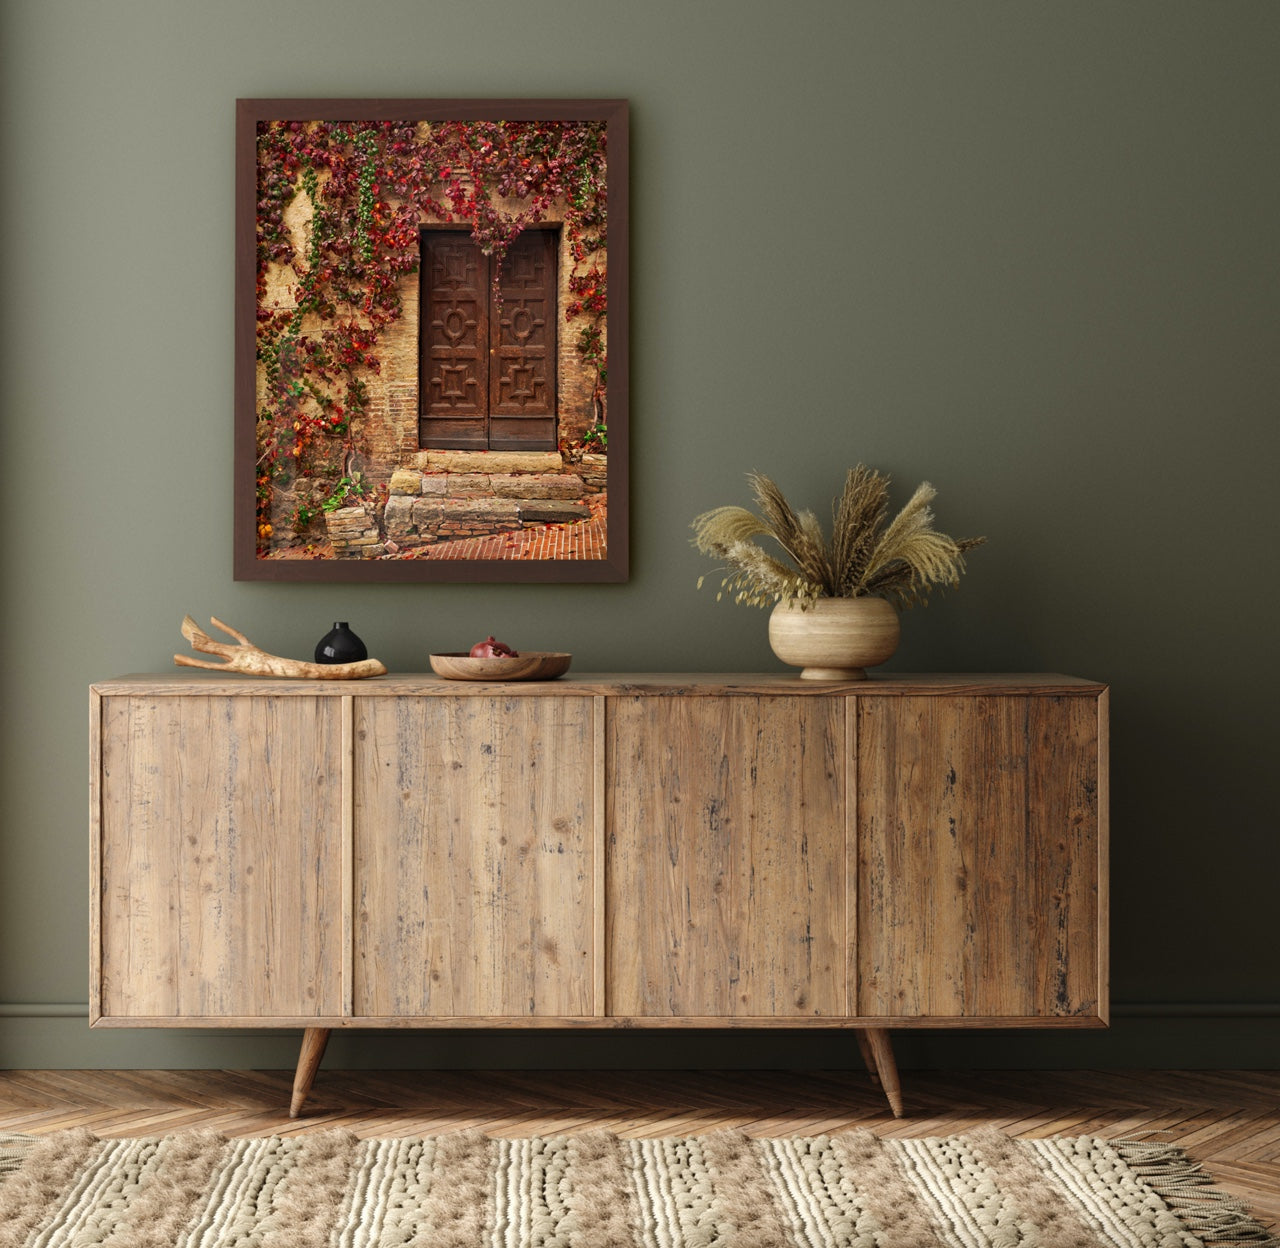 Framed photography with fall leaves over dresser